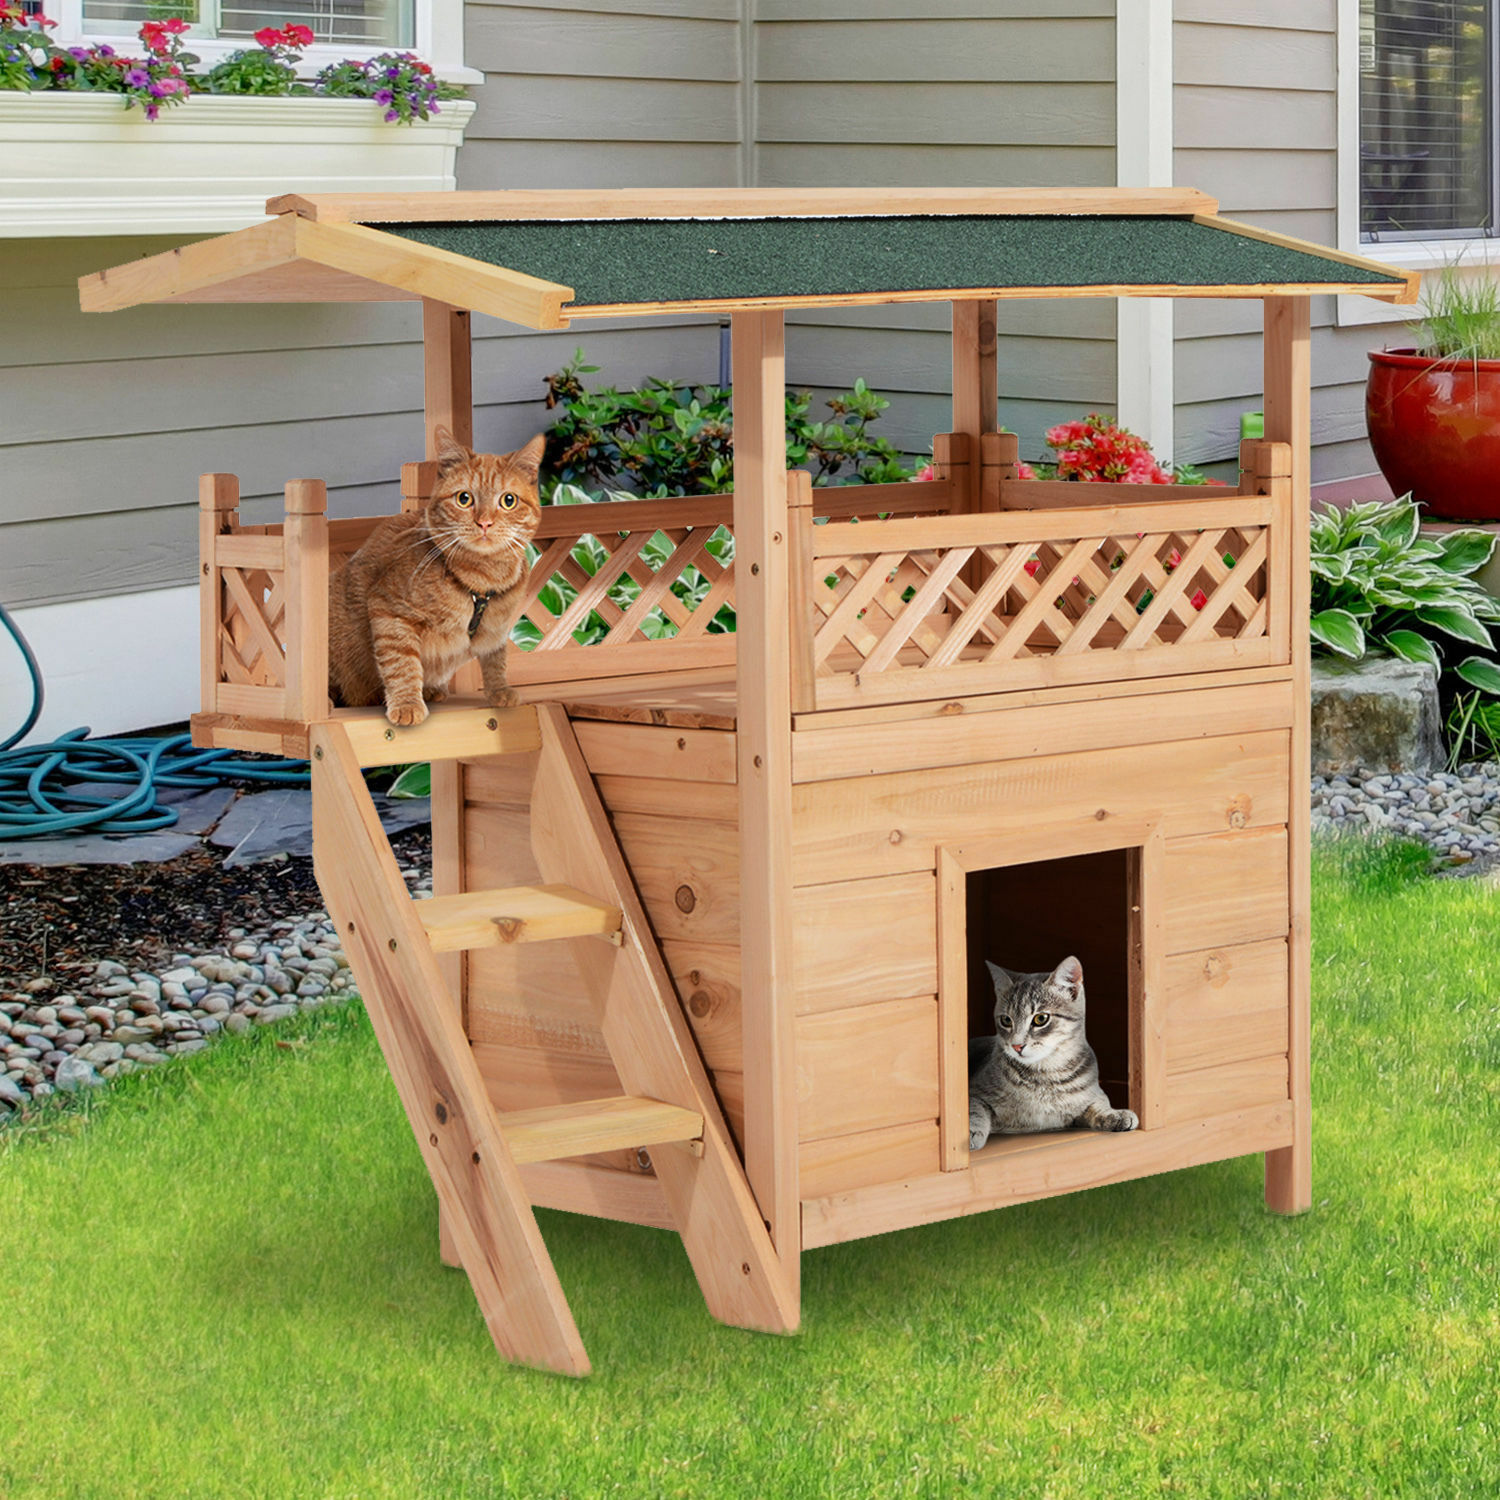 Wood Indoor Dog House Puppy Shelter Outdoor Cat Bed Room W Roof Balcony Stairs For Sale Online Ebay